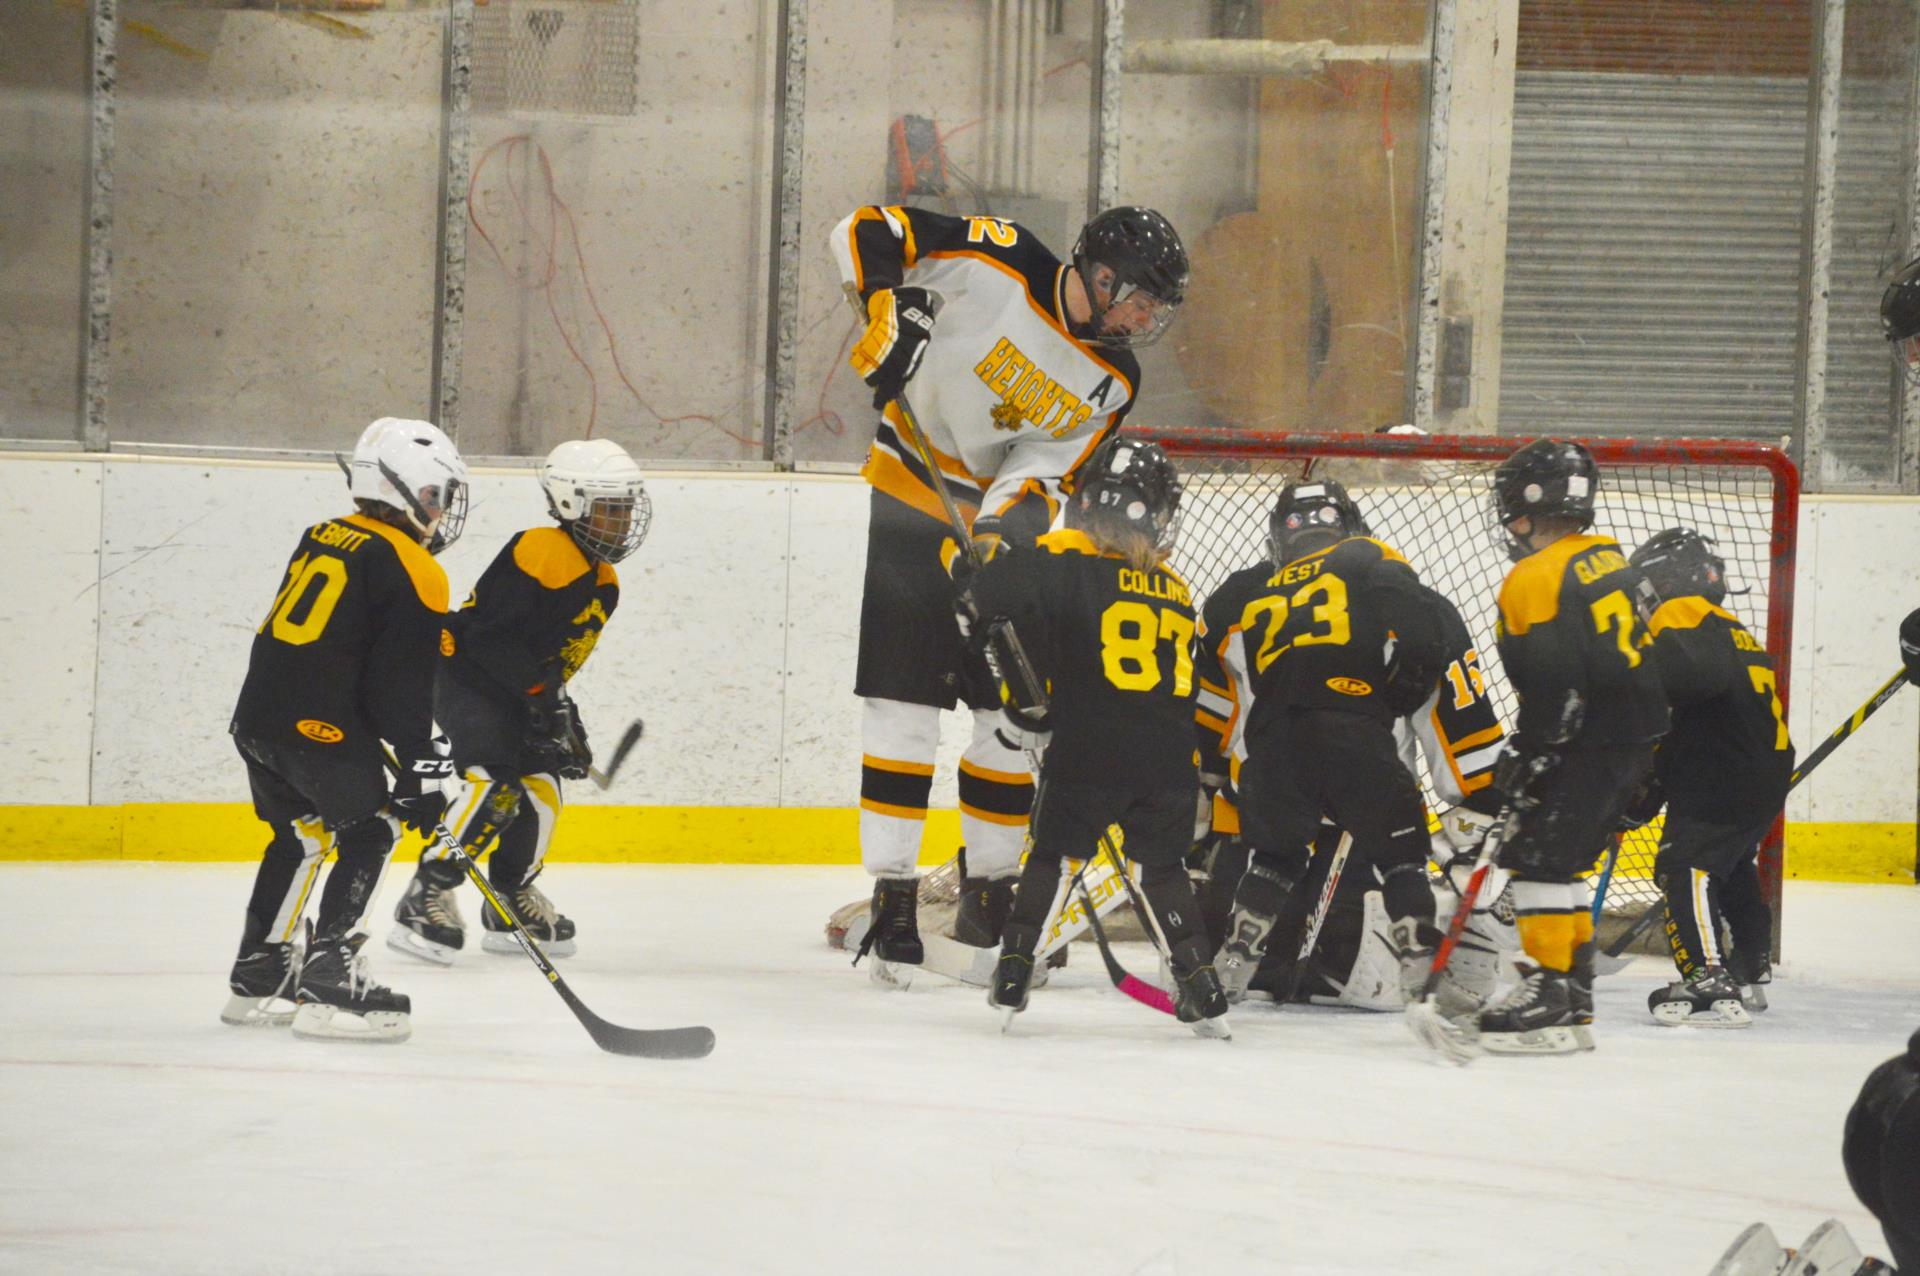 Heights player with Mites players on ice